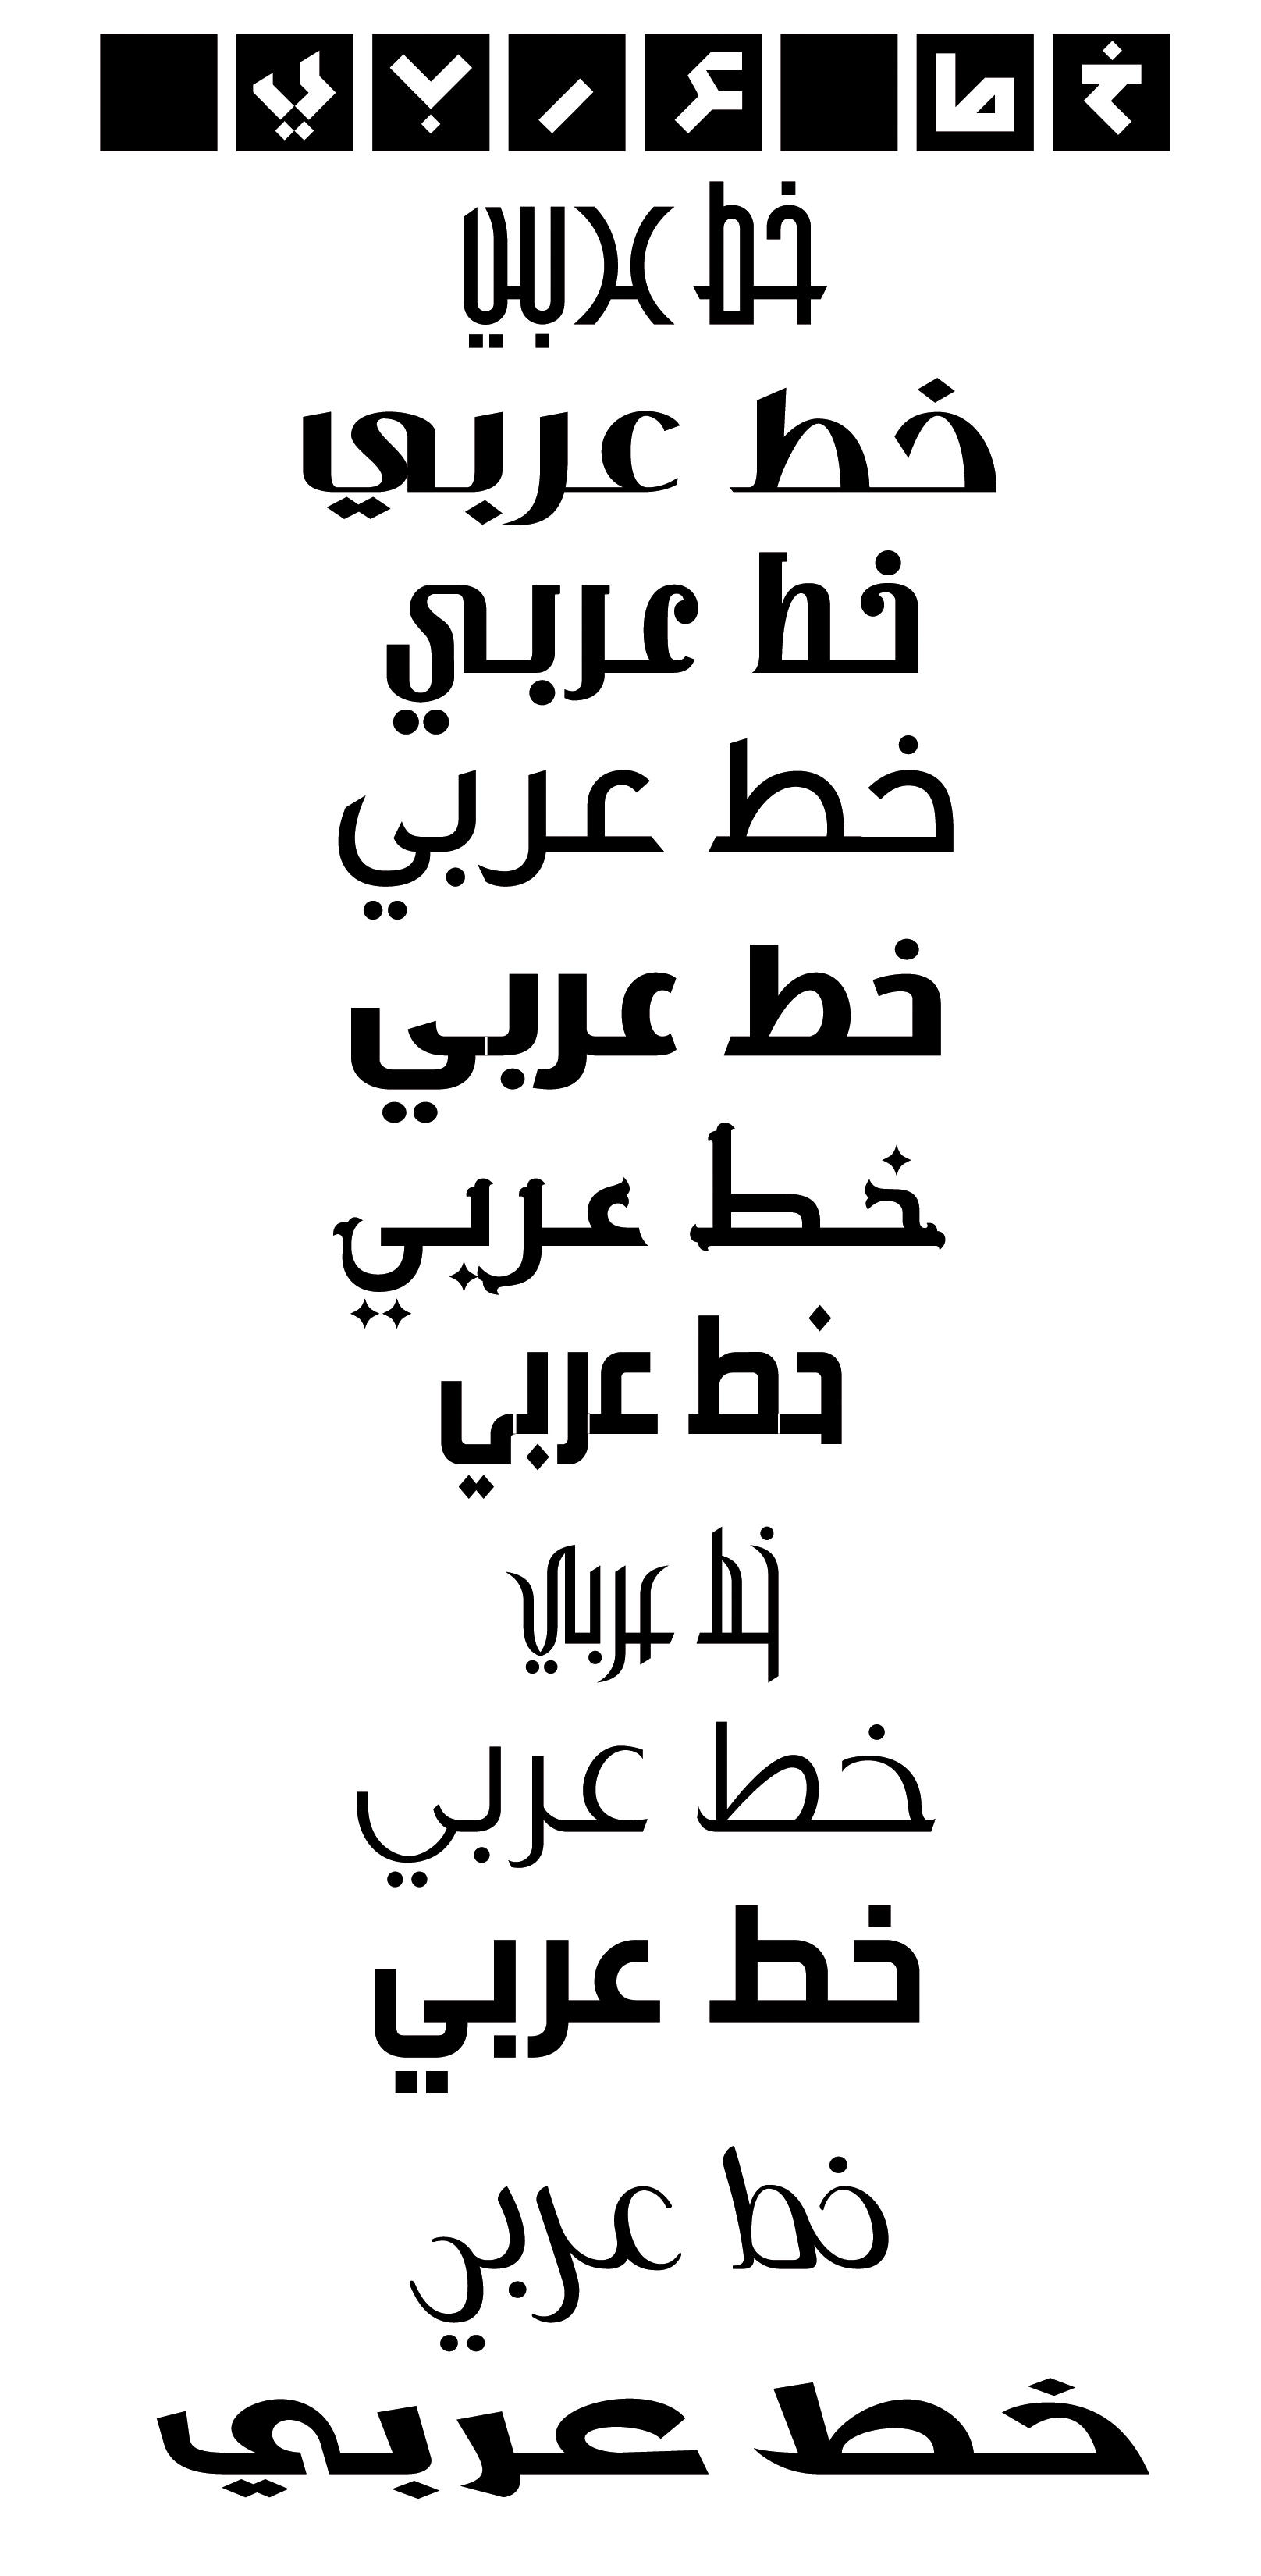 Diwani Font For Mac Arabic Font 4 Mac Or Pc By Naderbellal On Deviantart